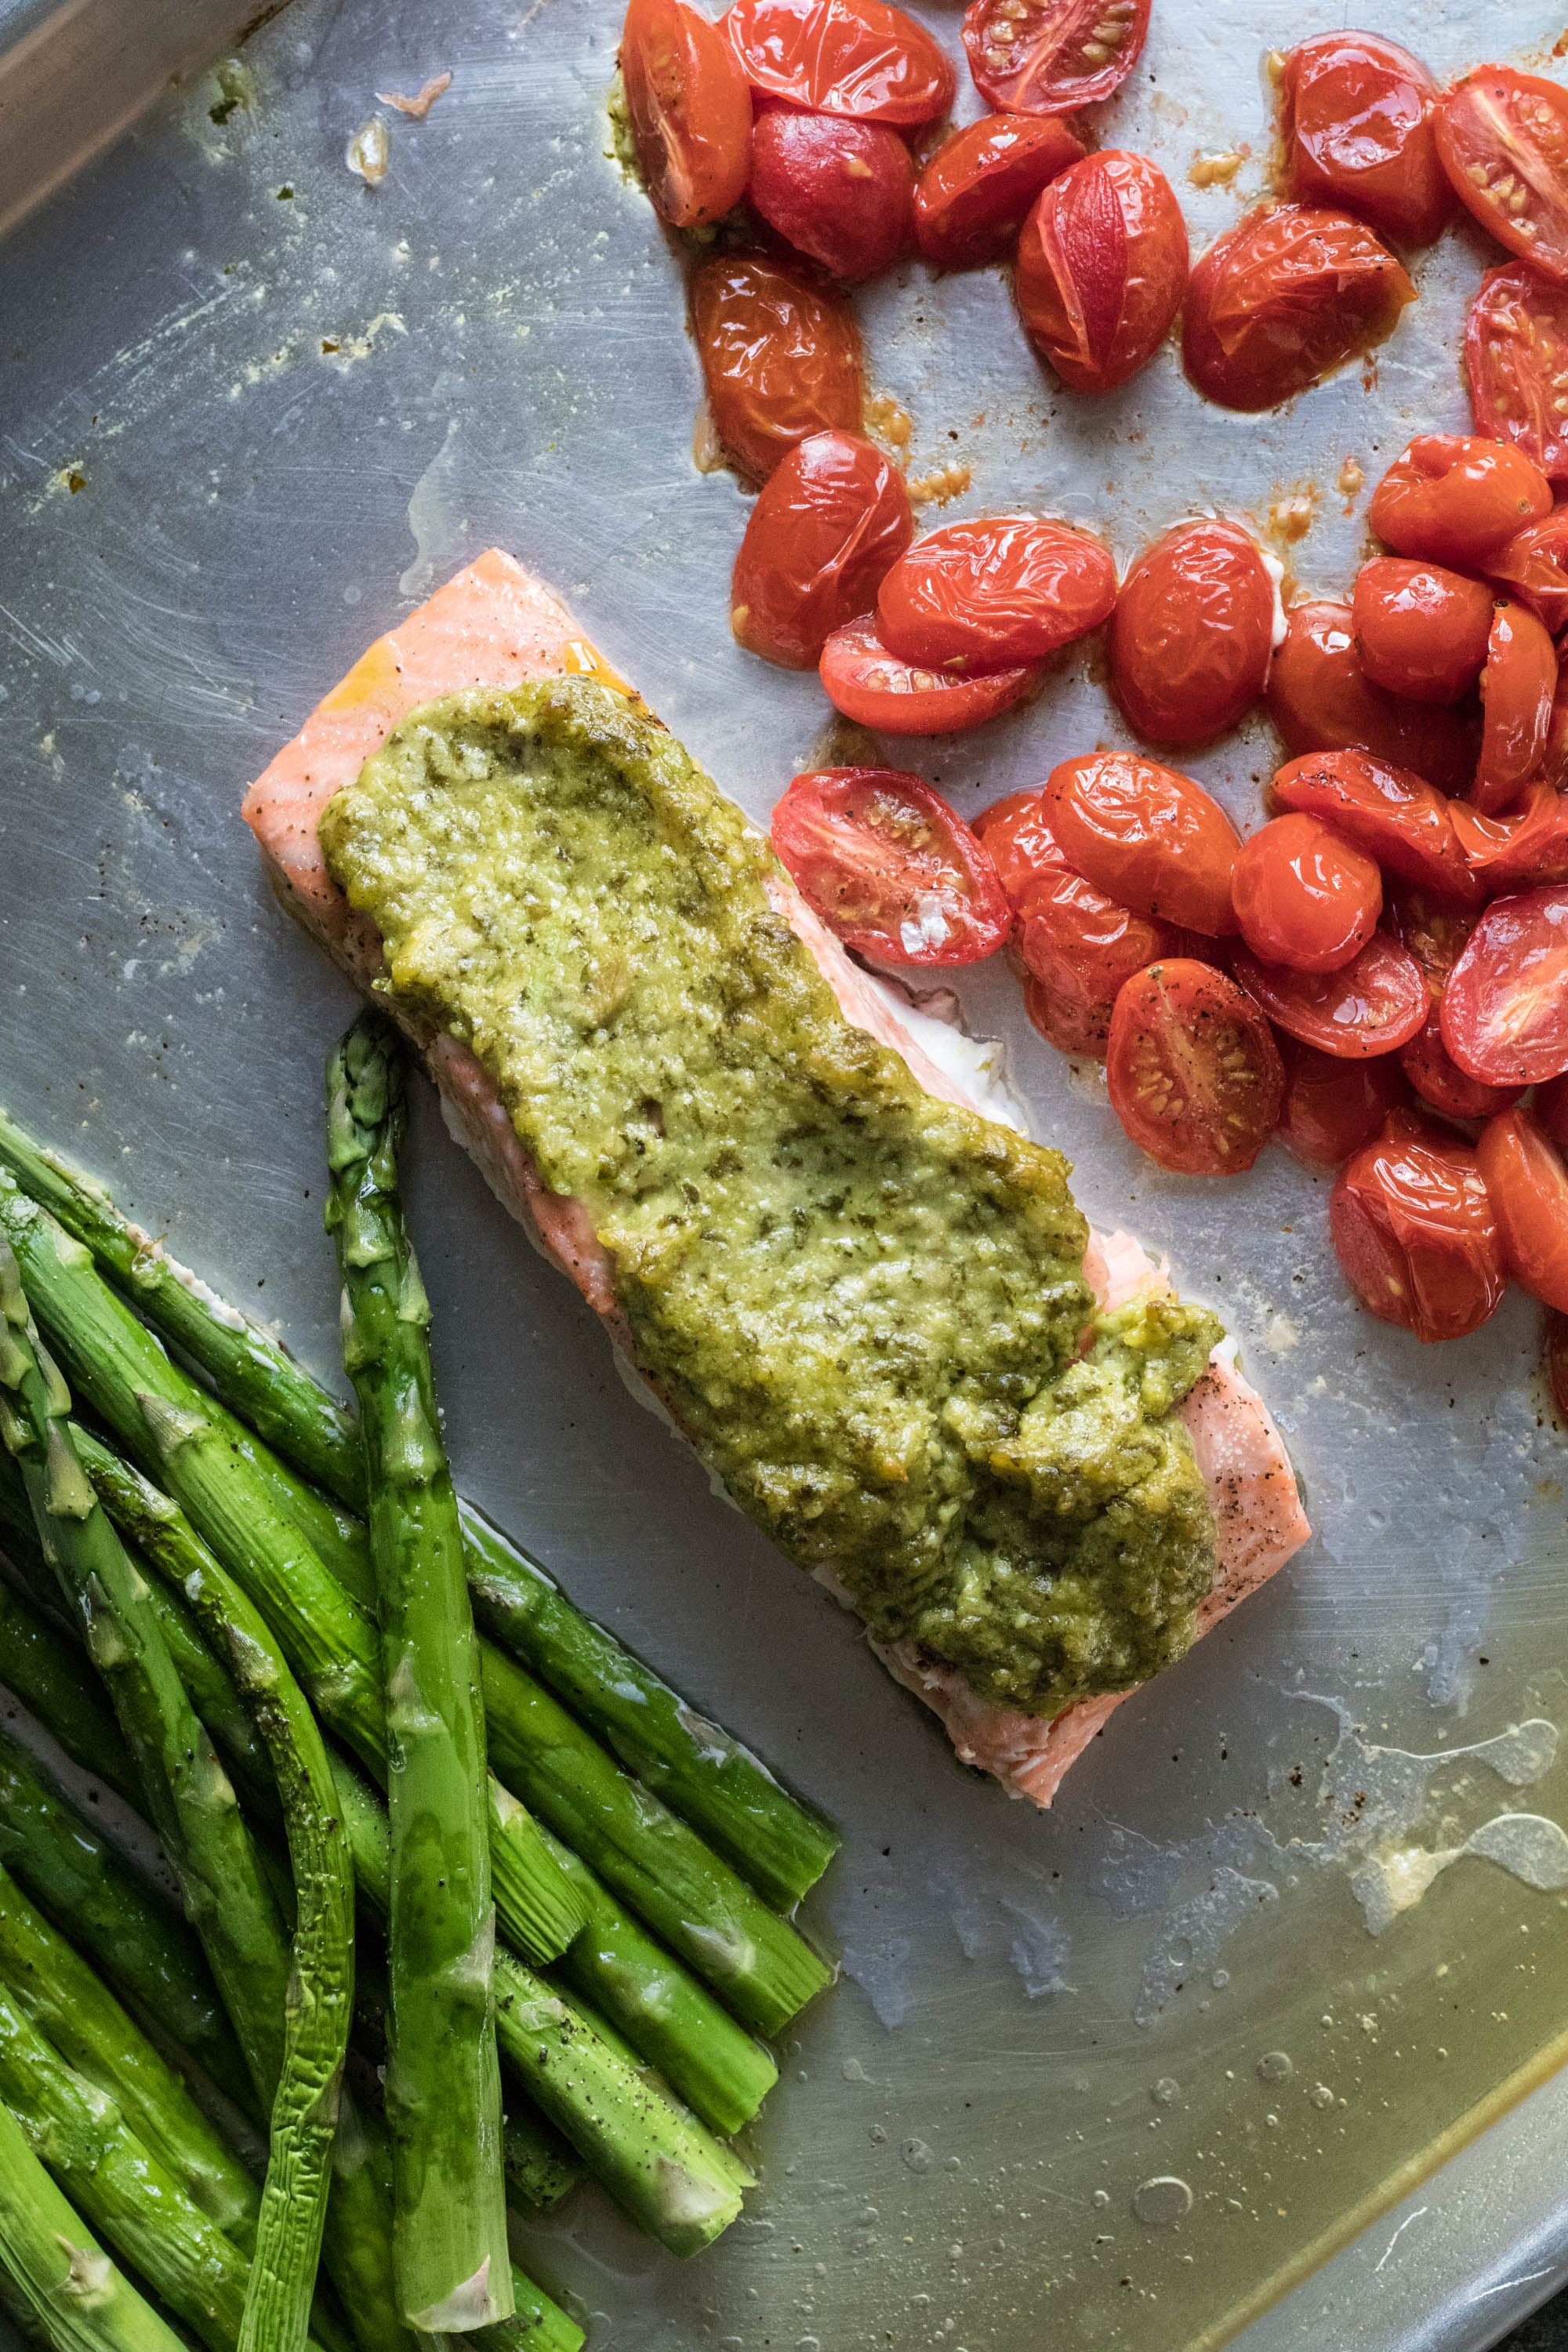 Sheet Pan meals are a fantastic way to make weeknight meal times easy and nutritious! Plus, clean up is a breeze! Try this sheet pan pesto salmon out today!krollskorner.com